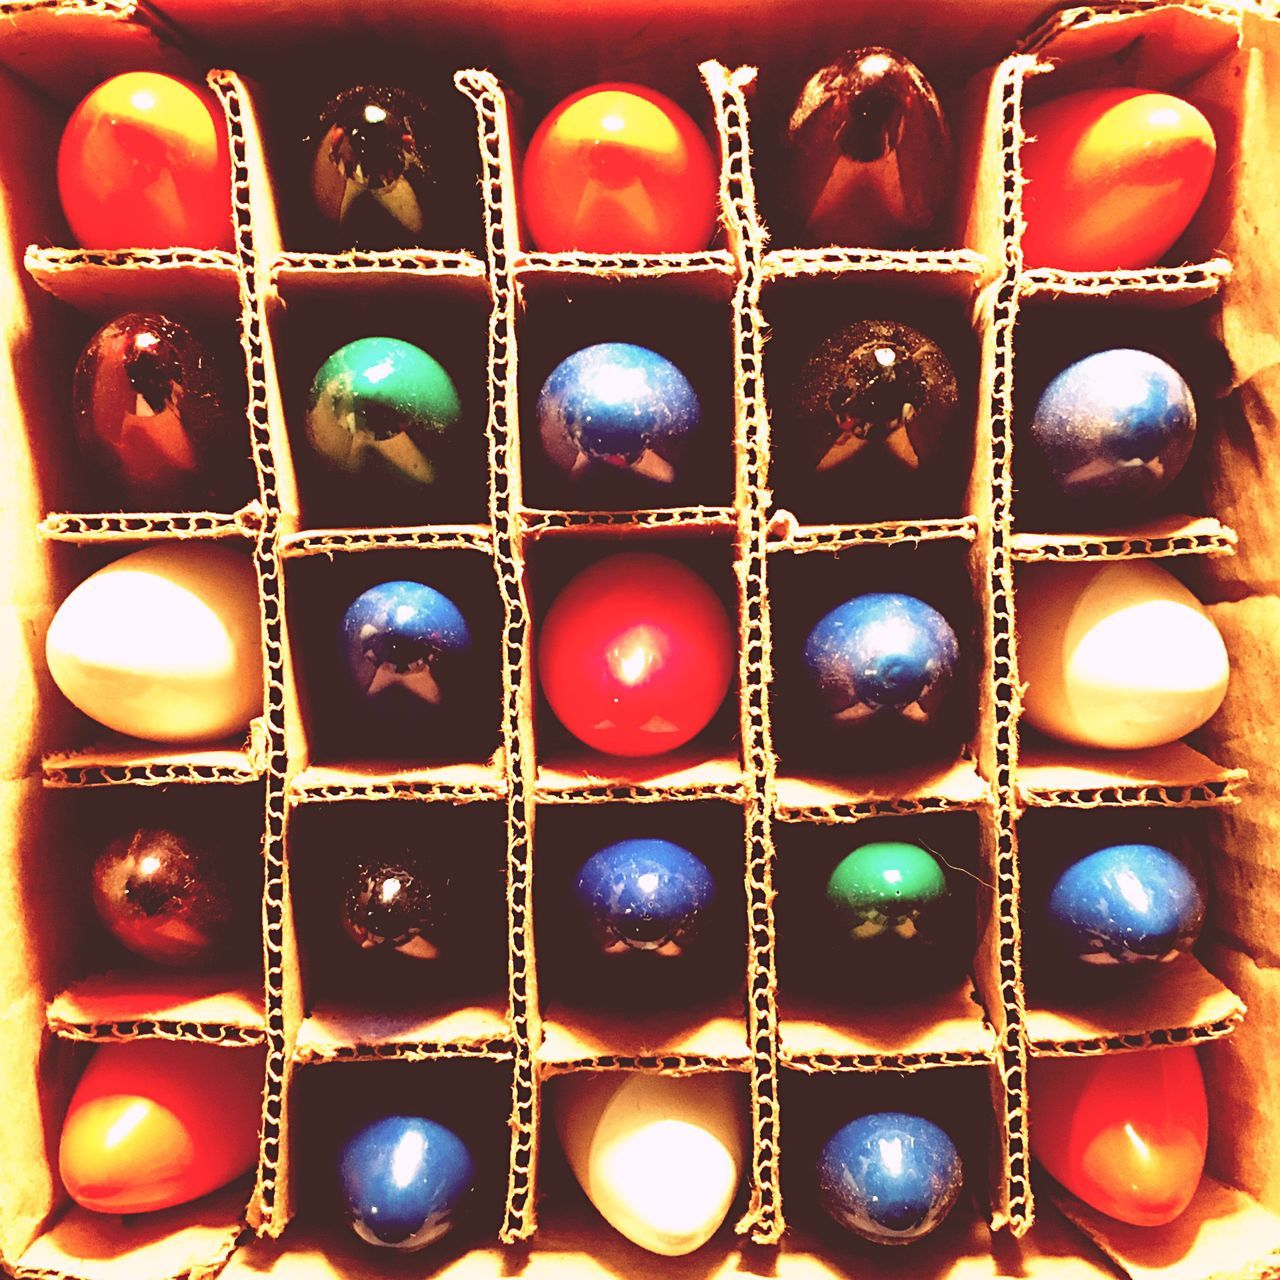 Colored Lights Group Of Objects Colorful Multi Colored No People Packaging Sections Organized Fragility Glass Lightbulbs Close-up No People View From Above Cardboard Corrugated Holiday Decorations Christmas Lights